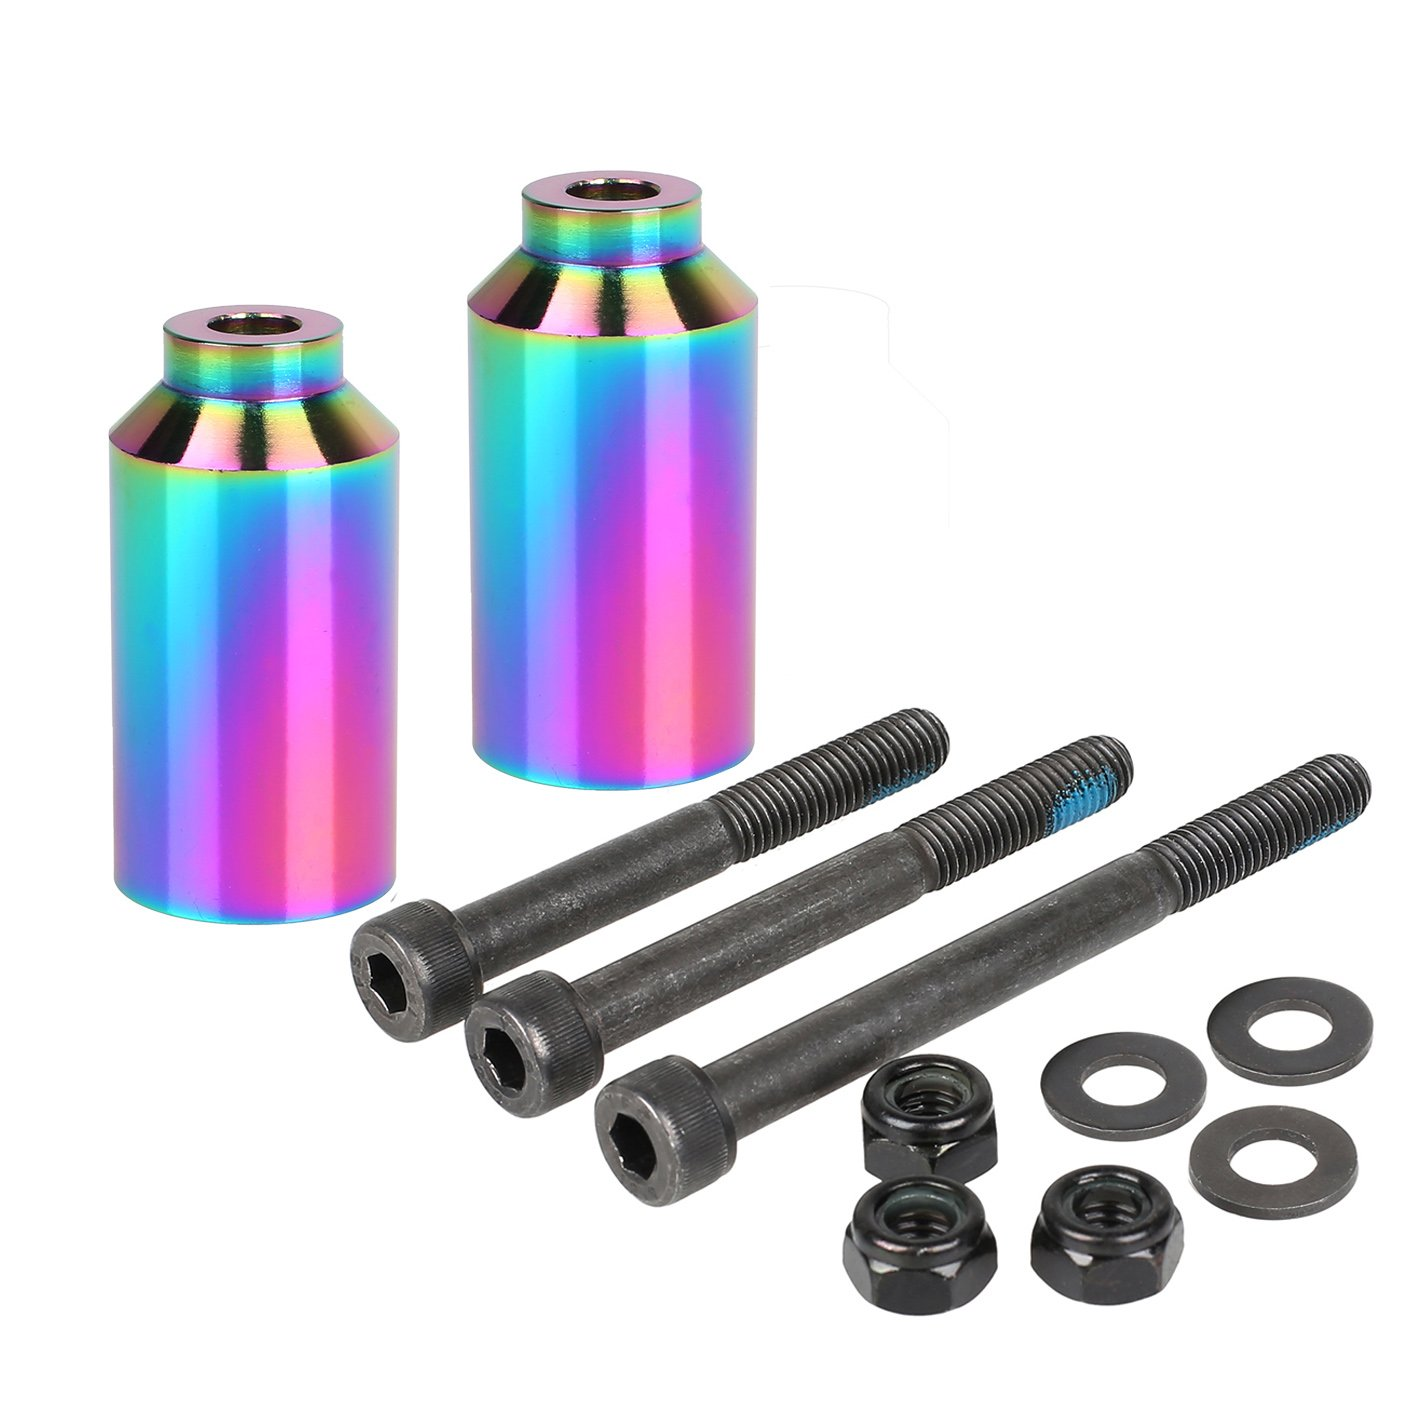 Kutrick Pro Scooter Pegs Set with Axle Hardware 2.5'', 3.0'',3.5'' for Freestyle Scooter Grinds